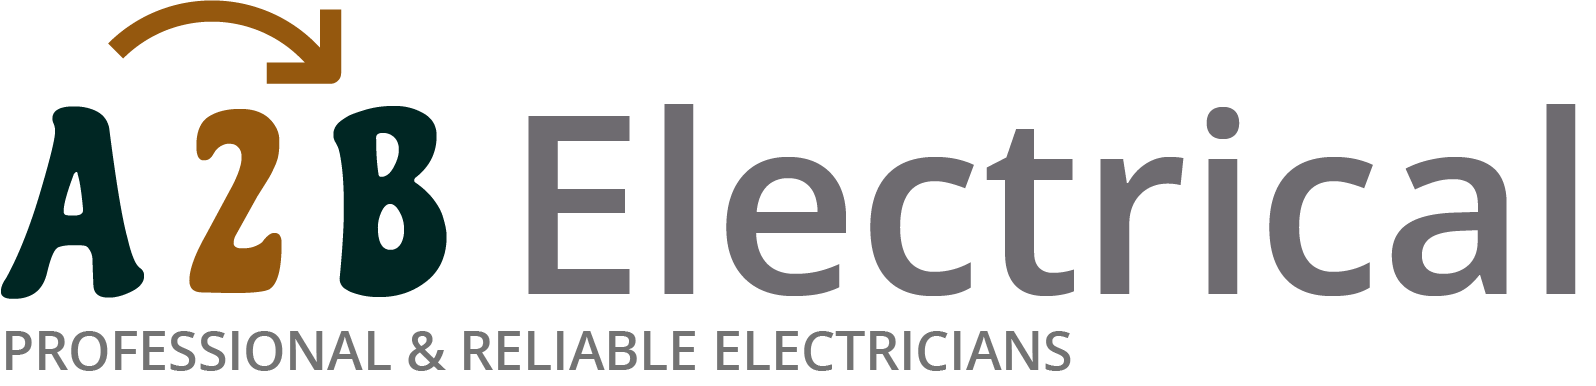 If you have electrical wiring problems in Muswell Hill, we can provide an electrician to have a look for you.